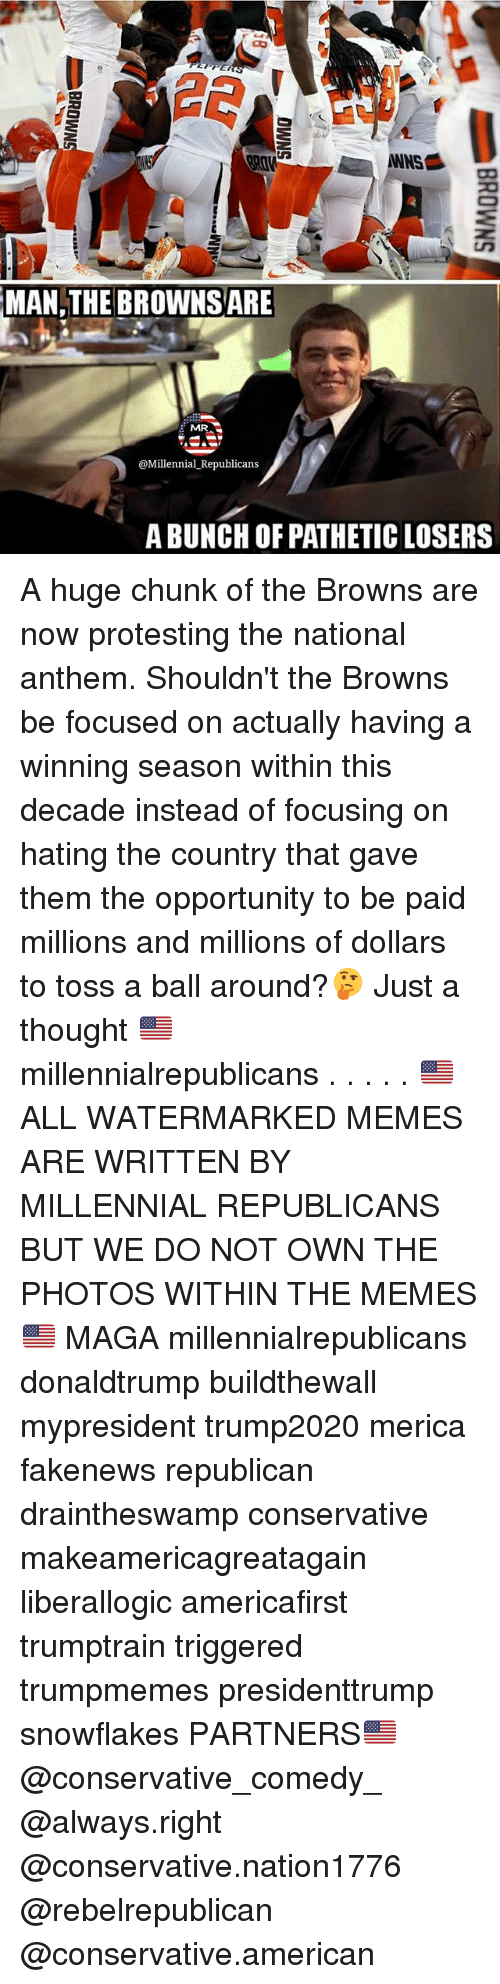 Memes, National Anthem, and American: NS  MAN,THE  BROWNSARE  MR  @Millennial Republicans  A BUNCH OF PATHETIC LOSERS A huge chunk of the Browns are now protesting the national anthem. Shouldn't the Browns be focused on actually having a winning season within this decade instead of focusing on hating the country that gave them the opportunity to be paid millions and millions of dollars to toss a ball around?🤔 Just a thought 🇺🇸 millennialrepublicans . . . . . 🇺🇸ALL WATERMARKED MEMES ARE WRITTEN BY MILLENNIAL REPUBLICANS BUT WE DO NOT OWN THE PHOTOS WITHIN THE MEMES🇺🇸 MAGA millennialrepublicans donaldtrump buildthewall mypresident trump2020 merica fakenews republican draintheswamp conservative makeamericagreatagain liberallogic americafirst trumptrain triggered trumpmemes presidenttrump snowflakes PARTNERS🇺🇸 @conservative_comedy_ @always.right @conservative.nation1776 @rebelrepublican @conservative.american